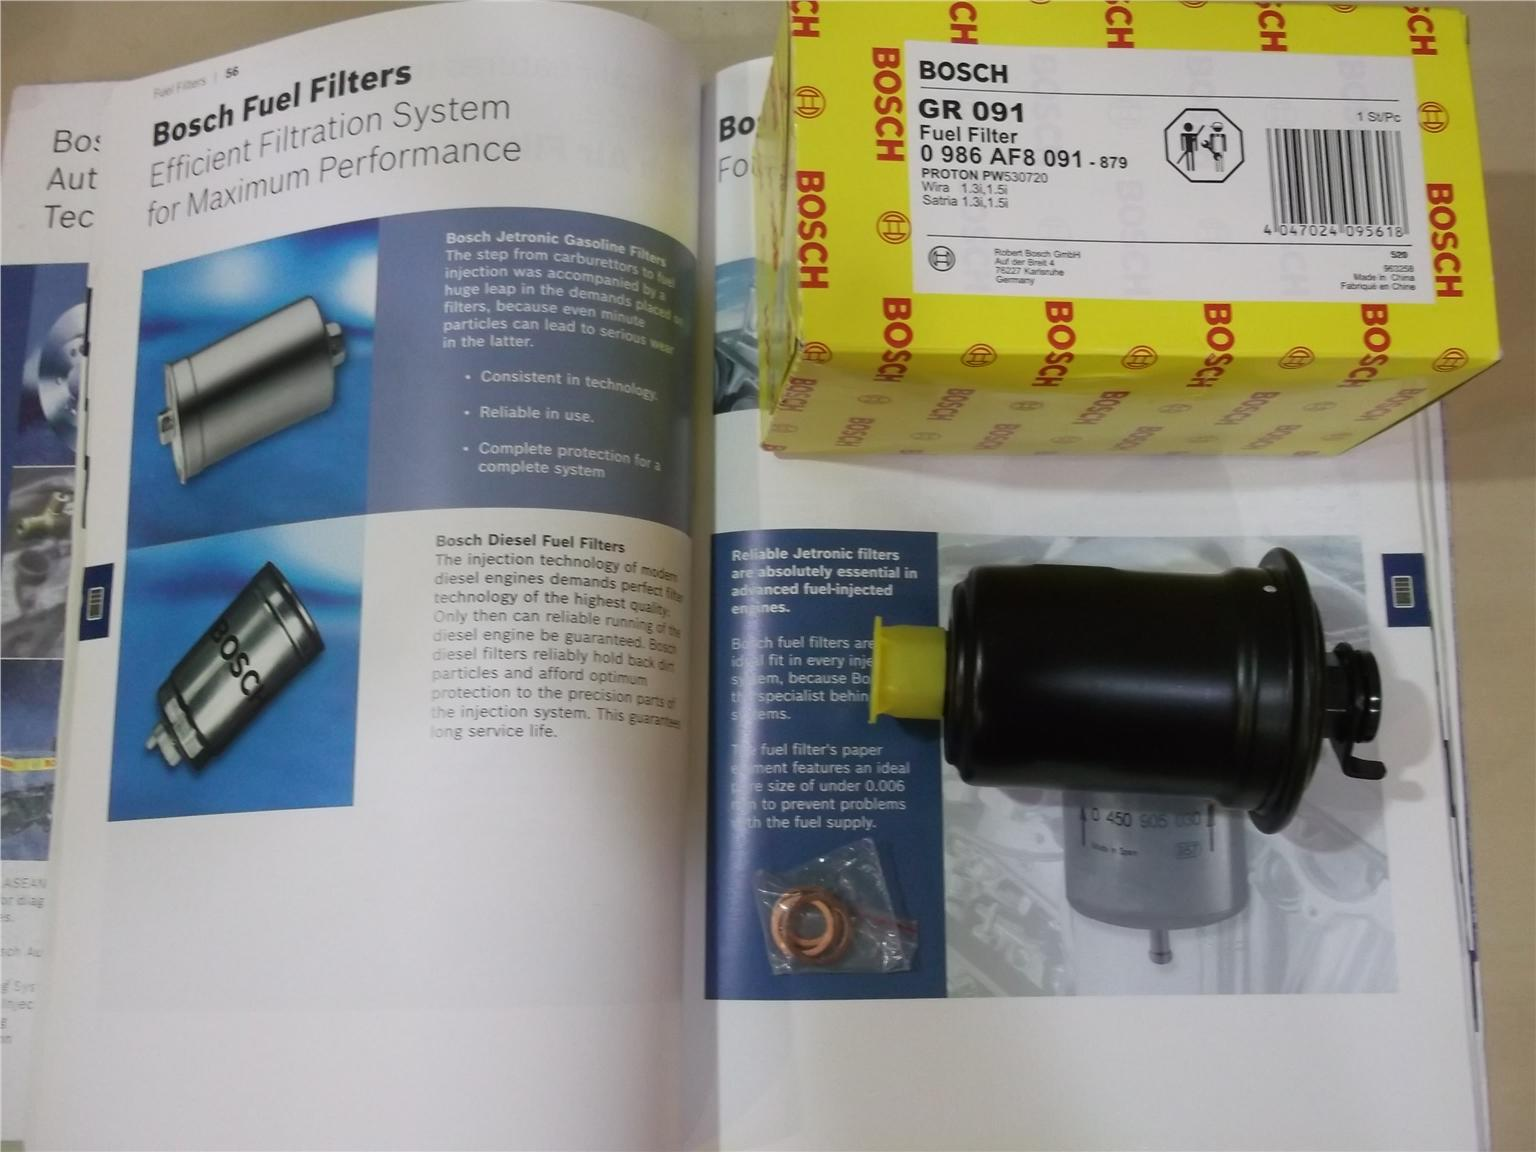 BOSCH FUEL FILTER for 4G13/4G15 WIRA/SATRIA INJECTION